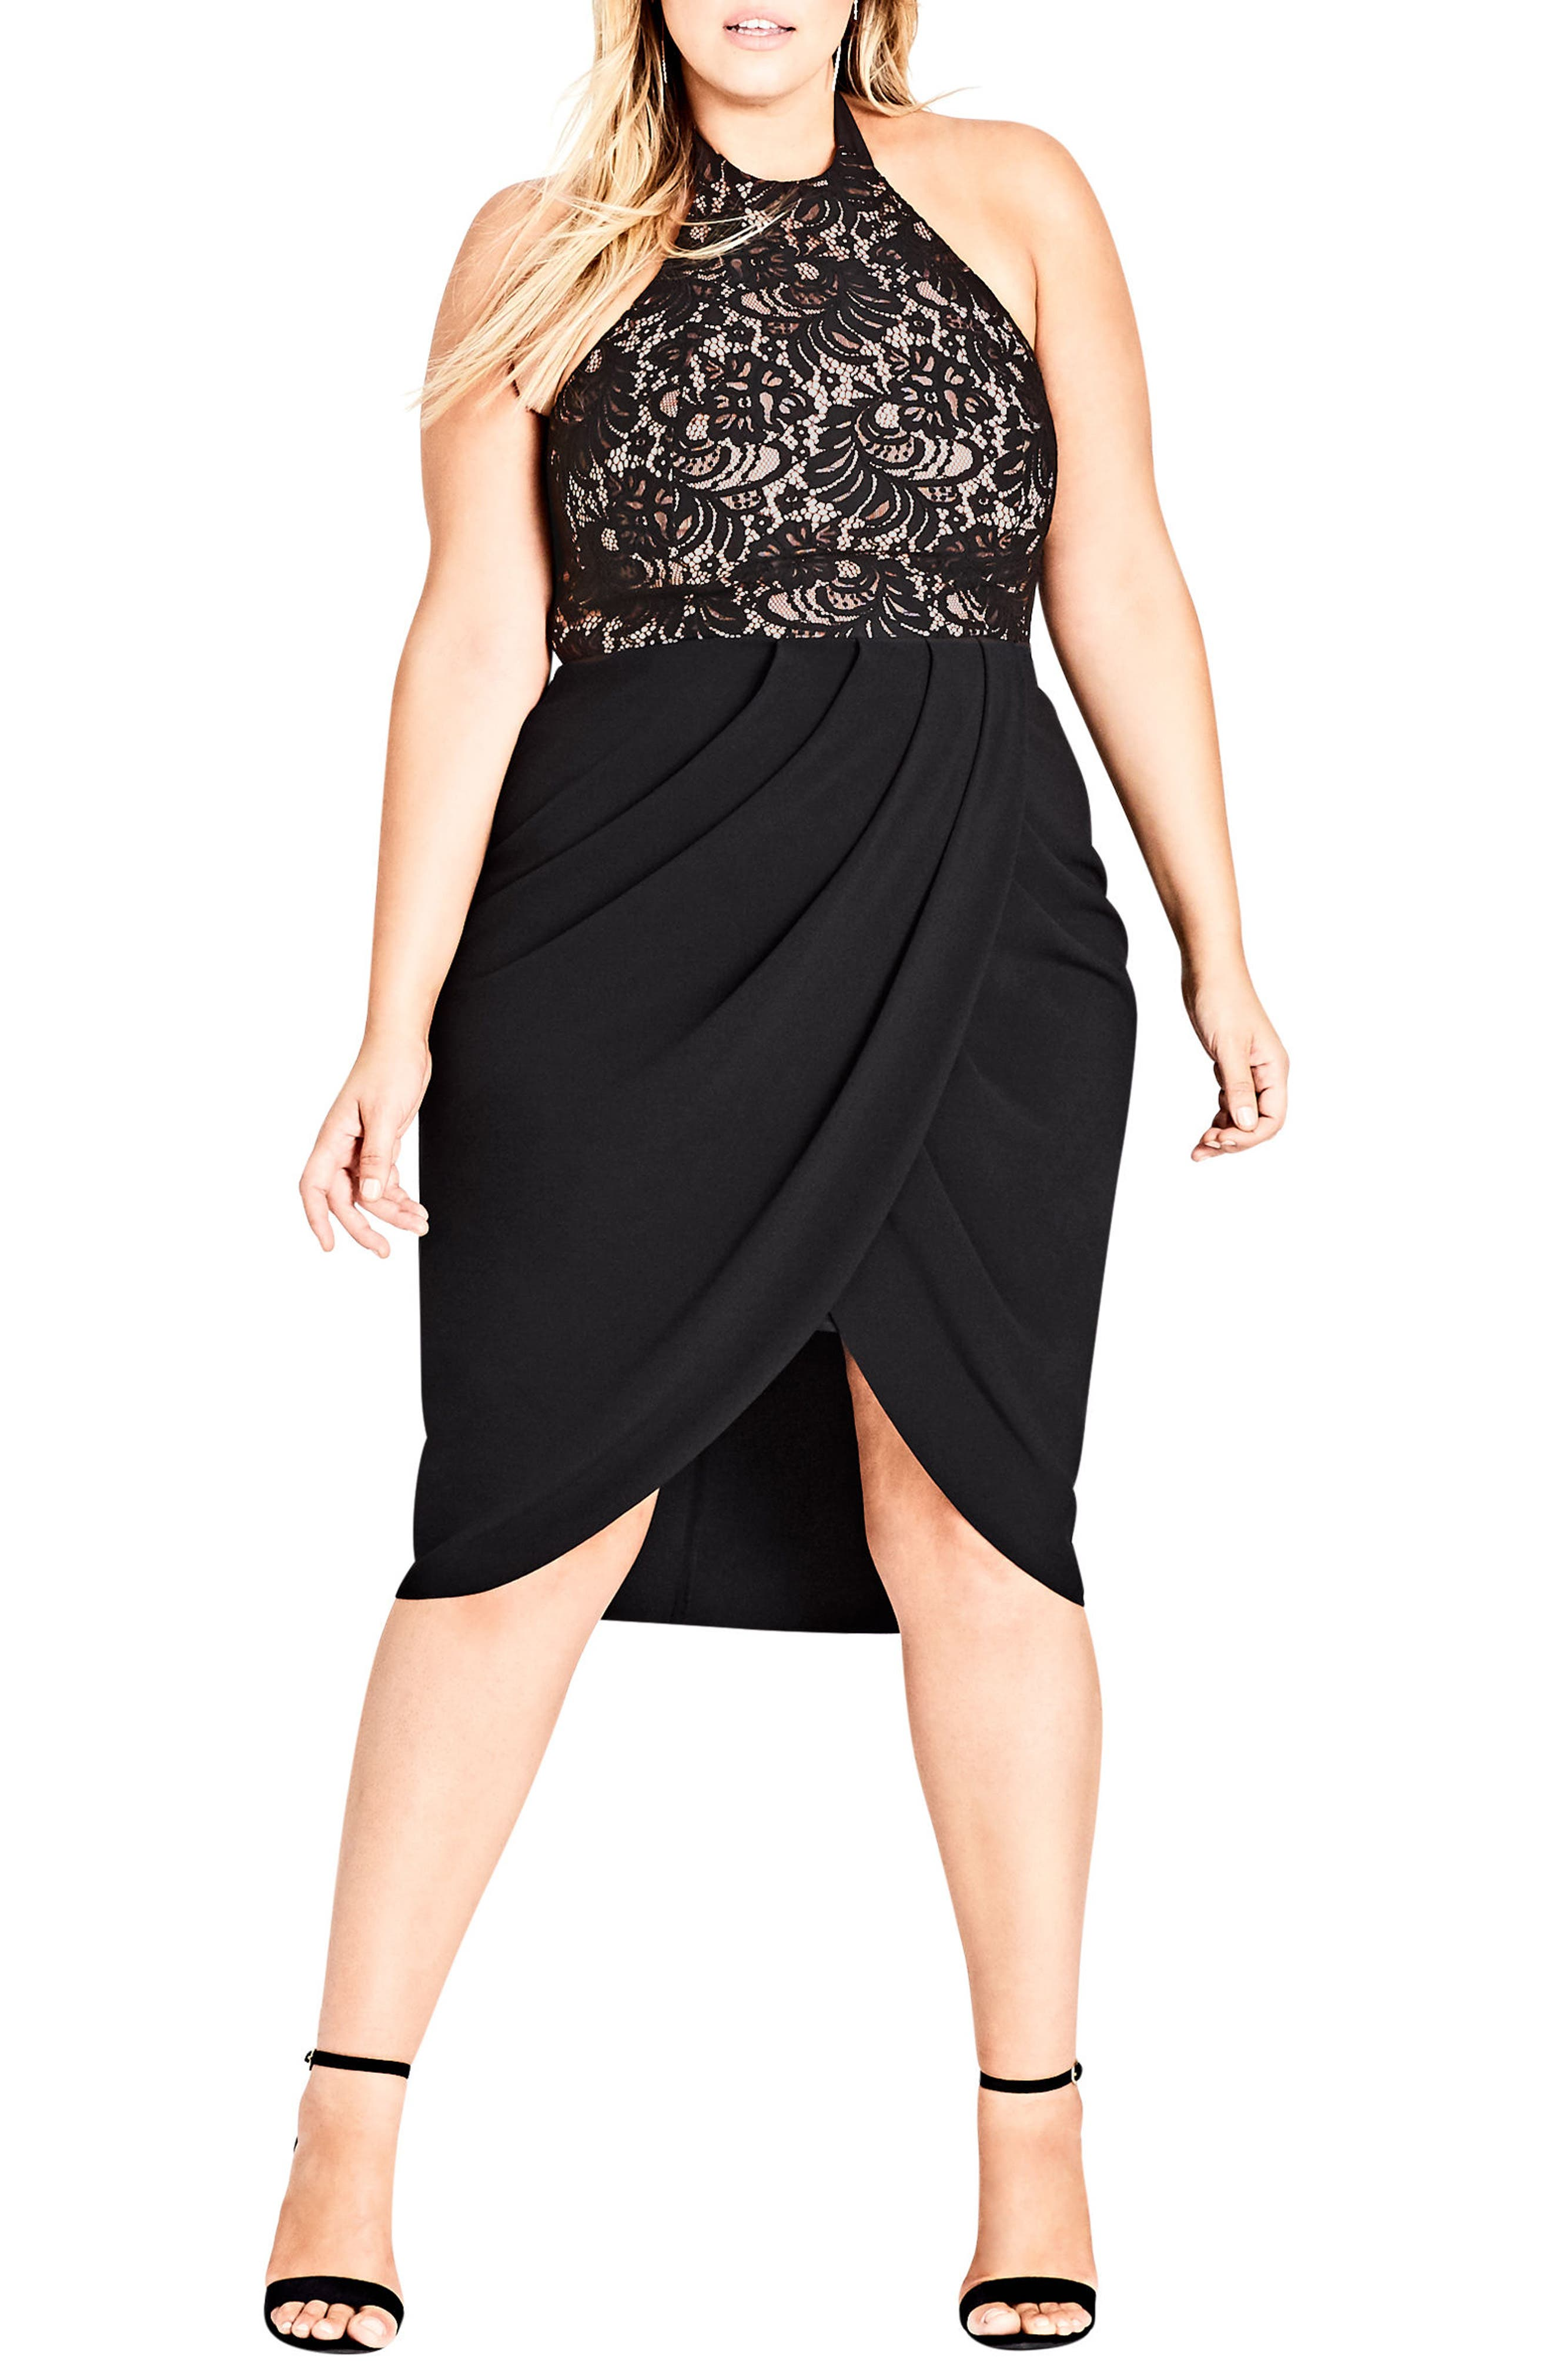 Alternate Image 1 Selected - City Chic Lady Portia Halter Dress (Plus Size)